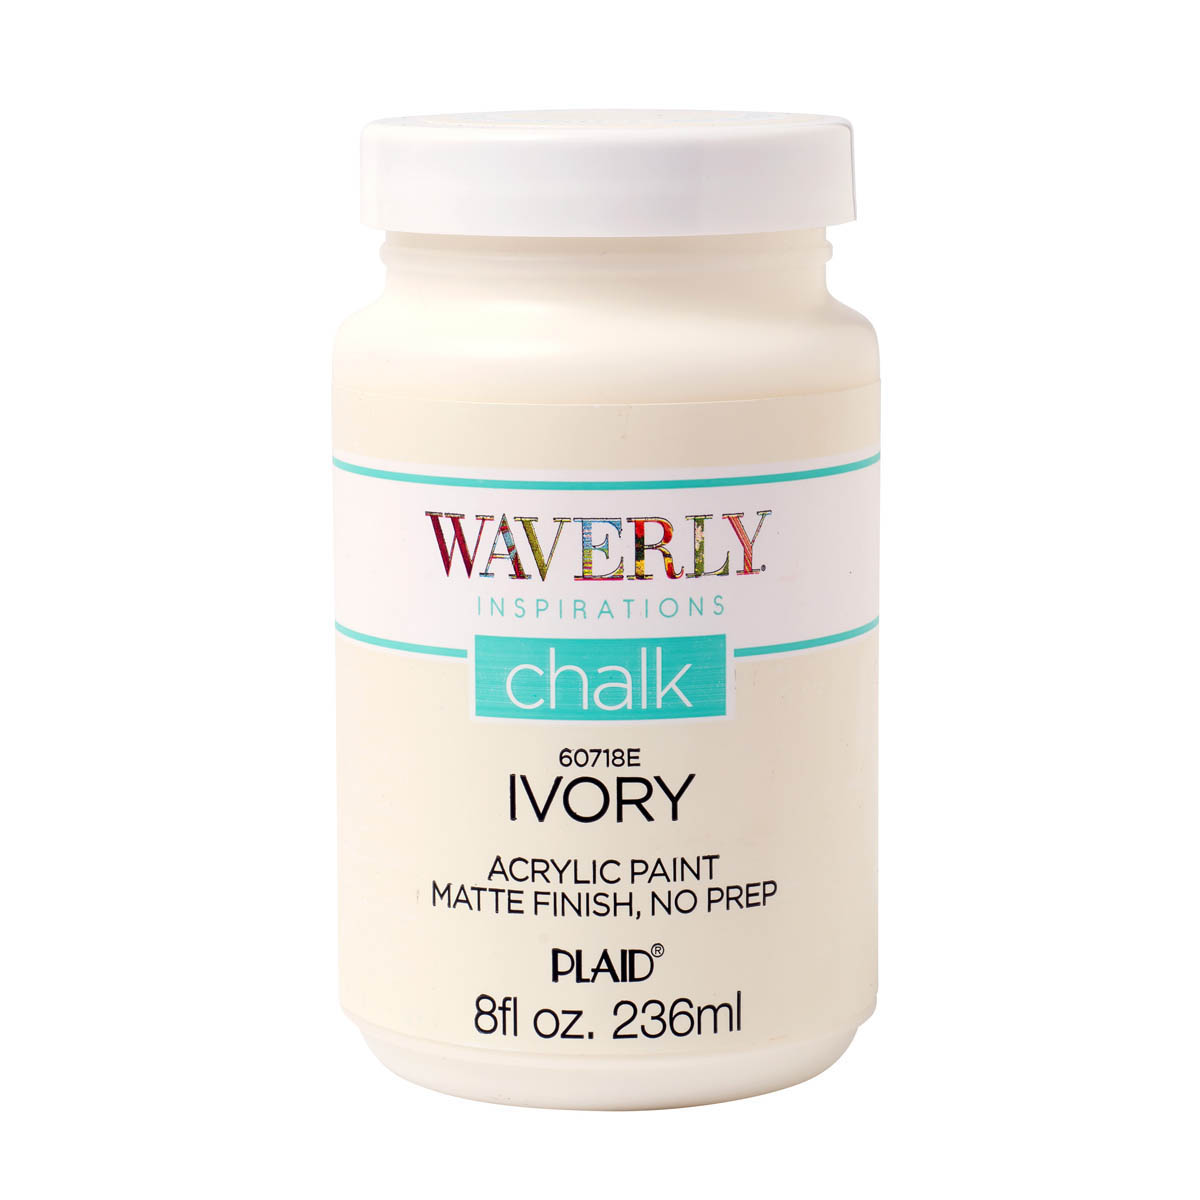 Waverly ® Inspirations Chalk Acrylic Paint - Ivory, 8 oz.